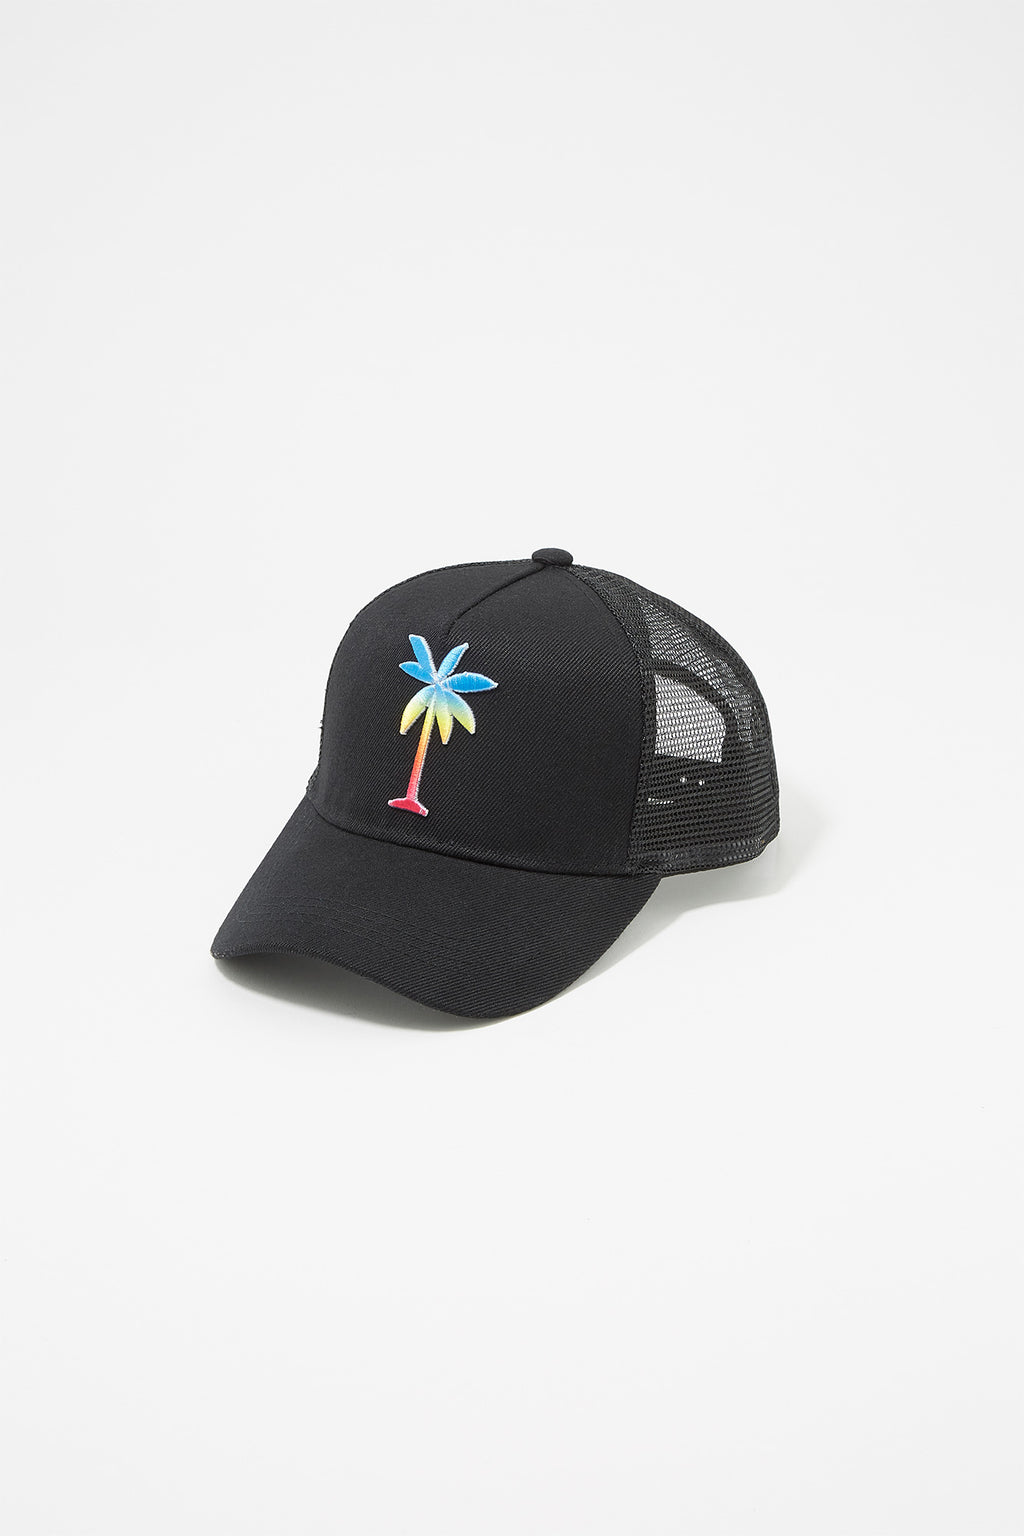 Zoo York Boys Palm Tree Trucker Hat